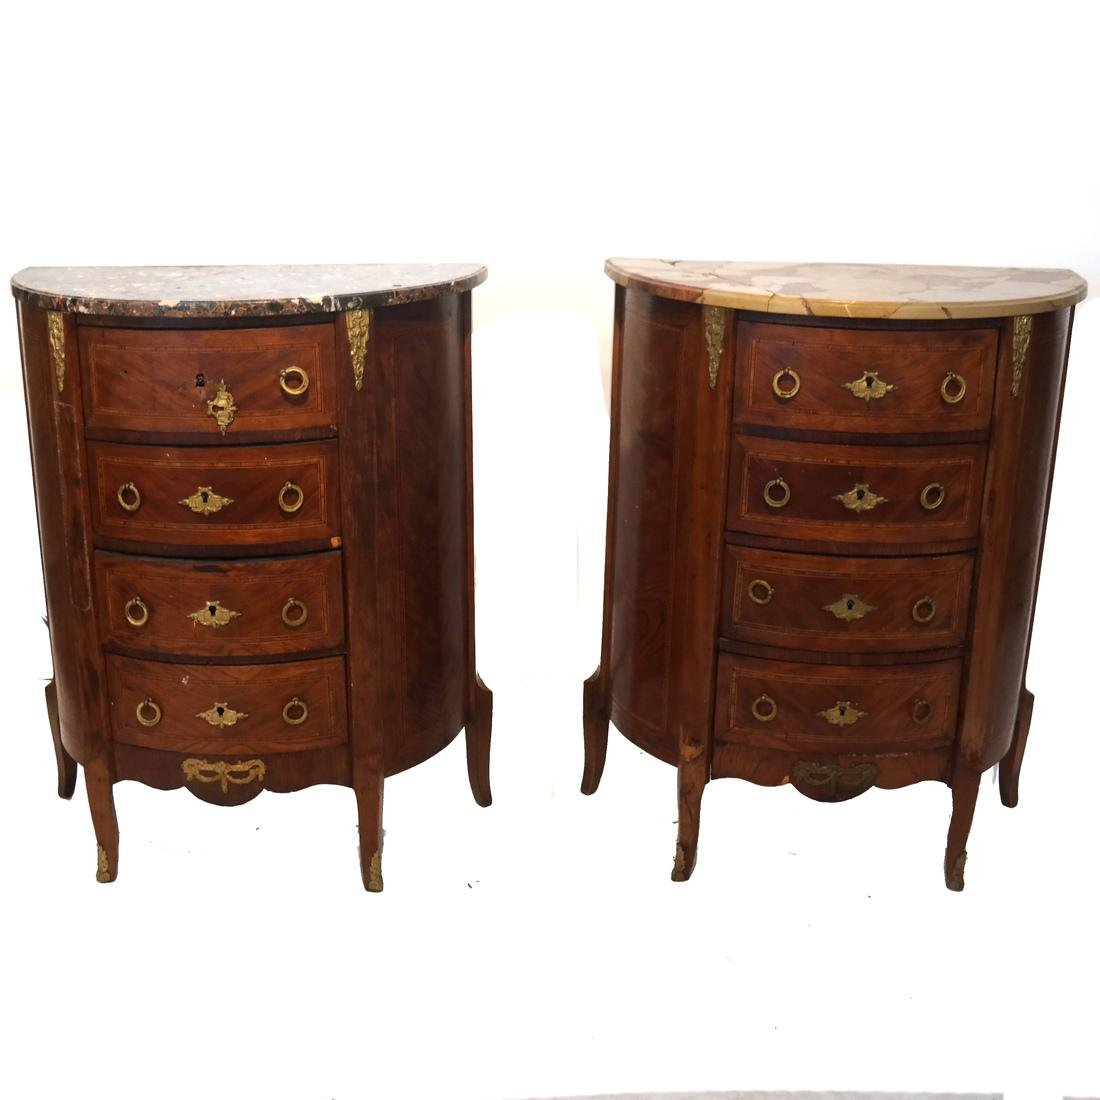 Pair of French Demilune Commodes